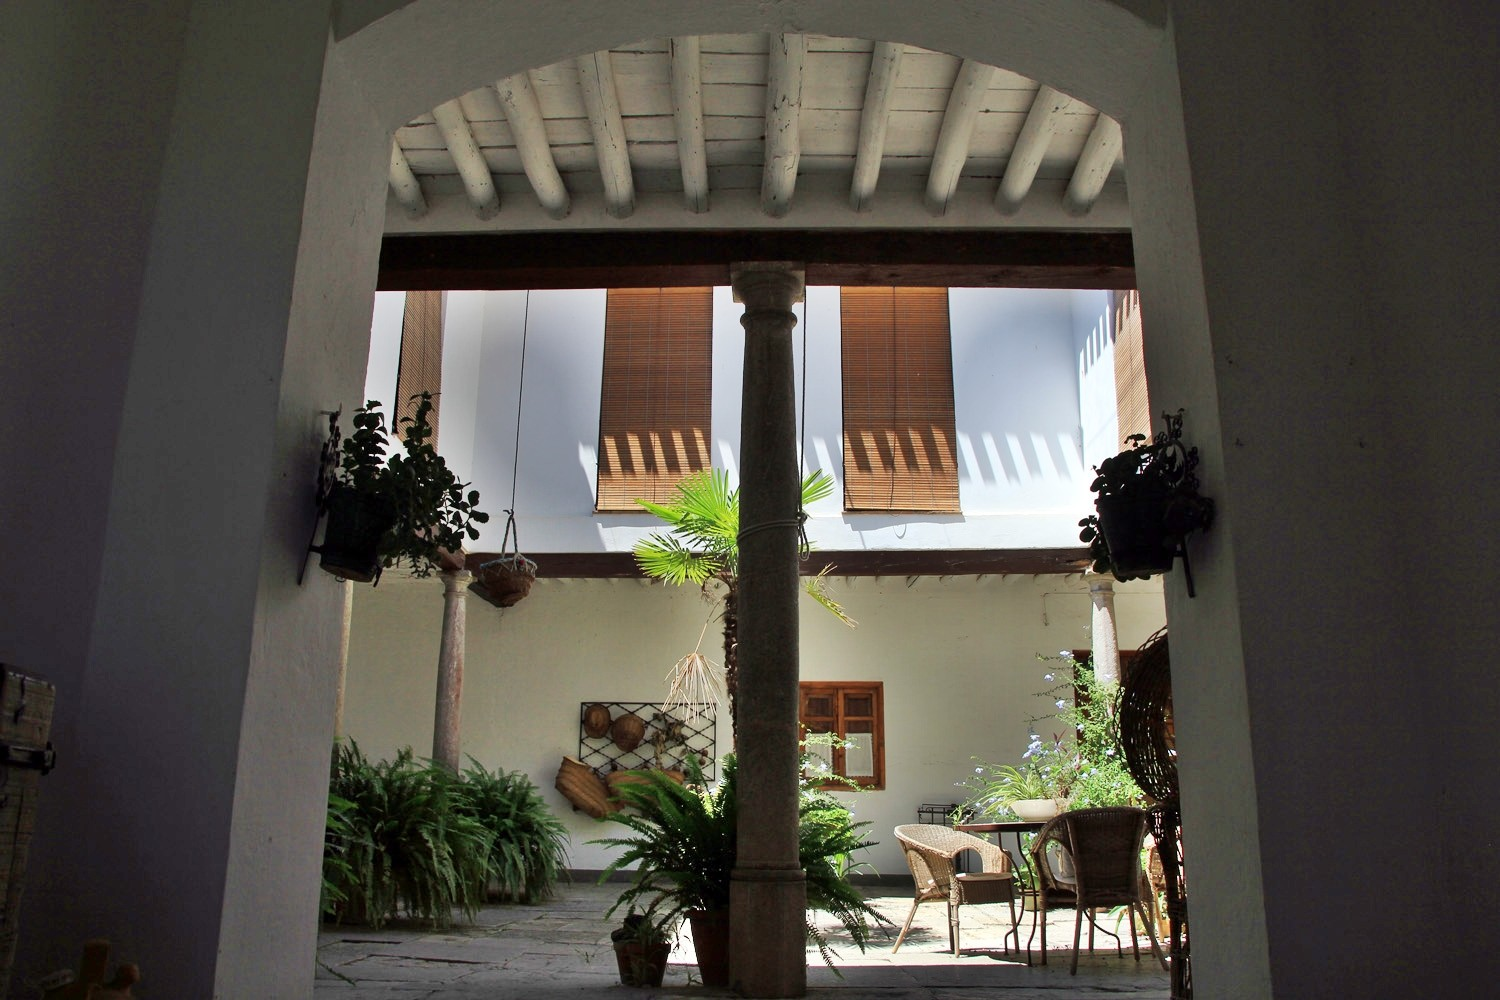 The entrance to the central courtyard